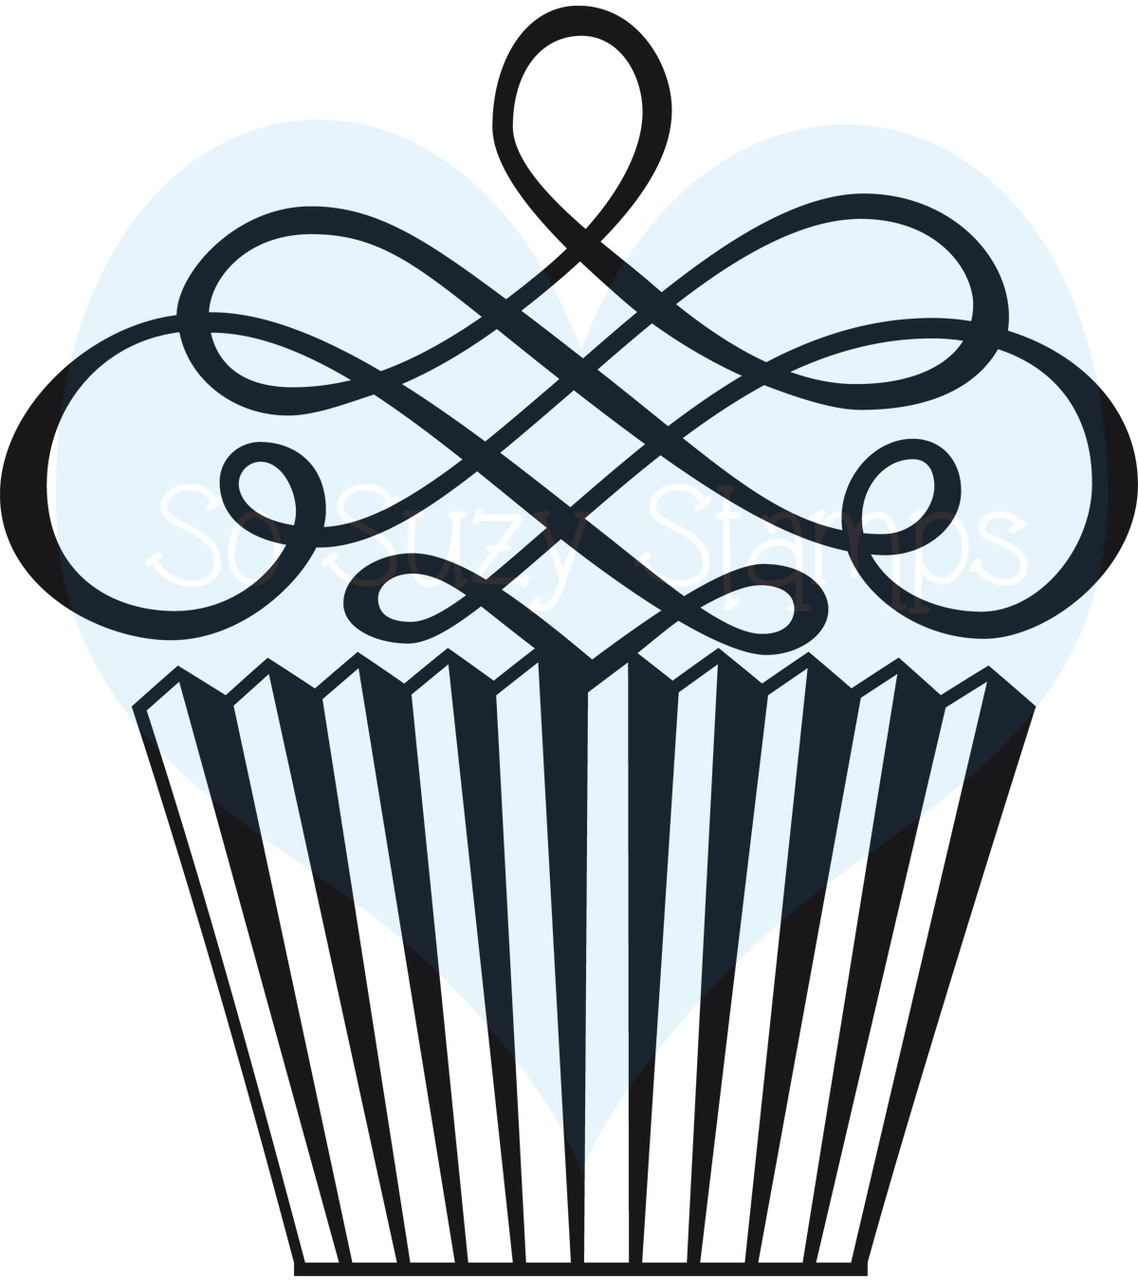 Image free download best. Cupcake clipart swirl